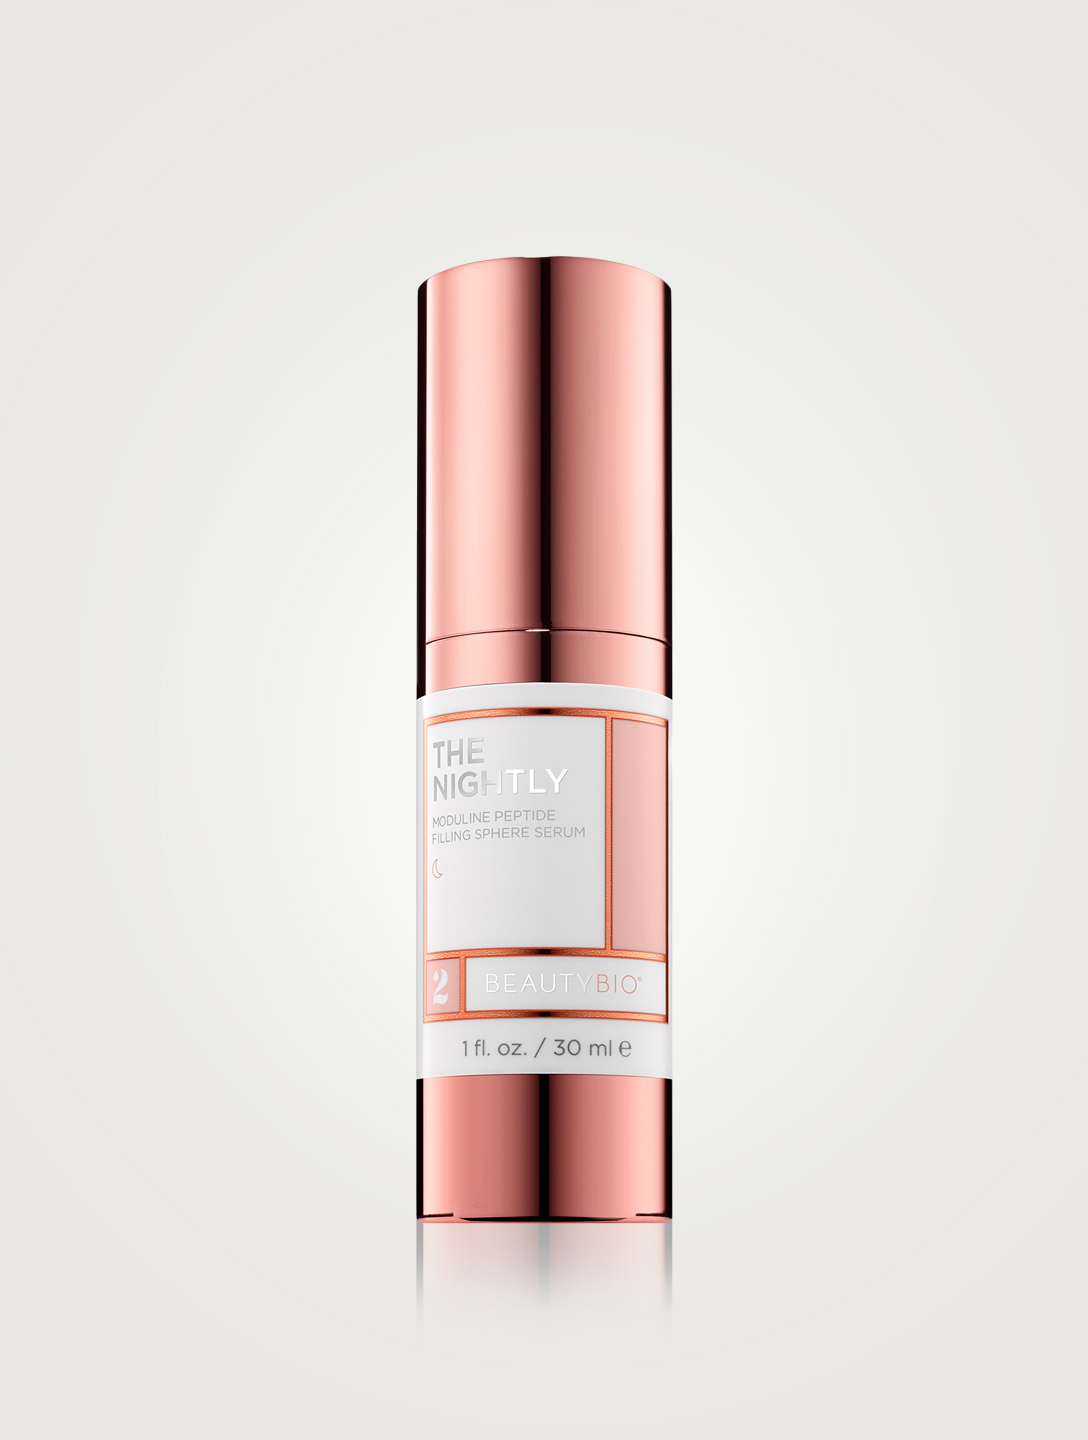 BEAUTYBIO The Nightly Moduline Peptide Filling Sphere Serum Beauty